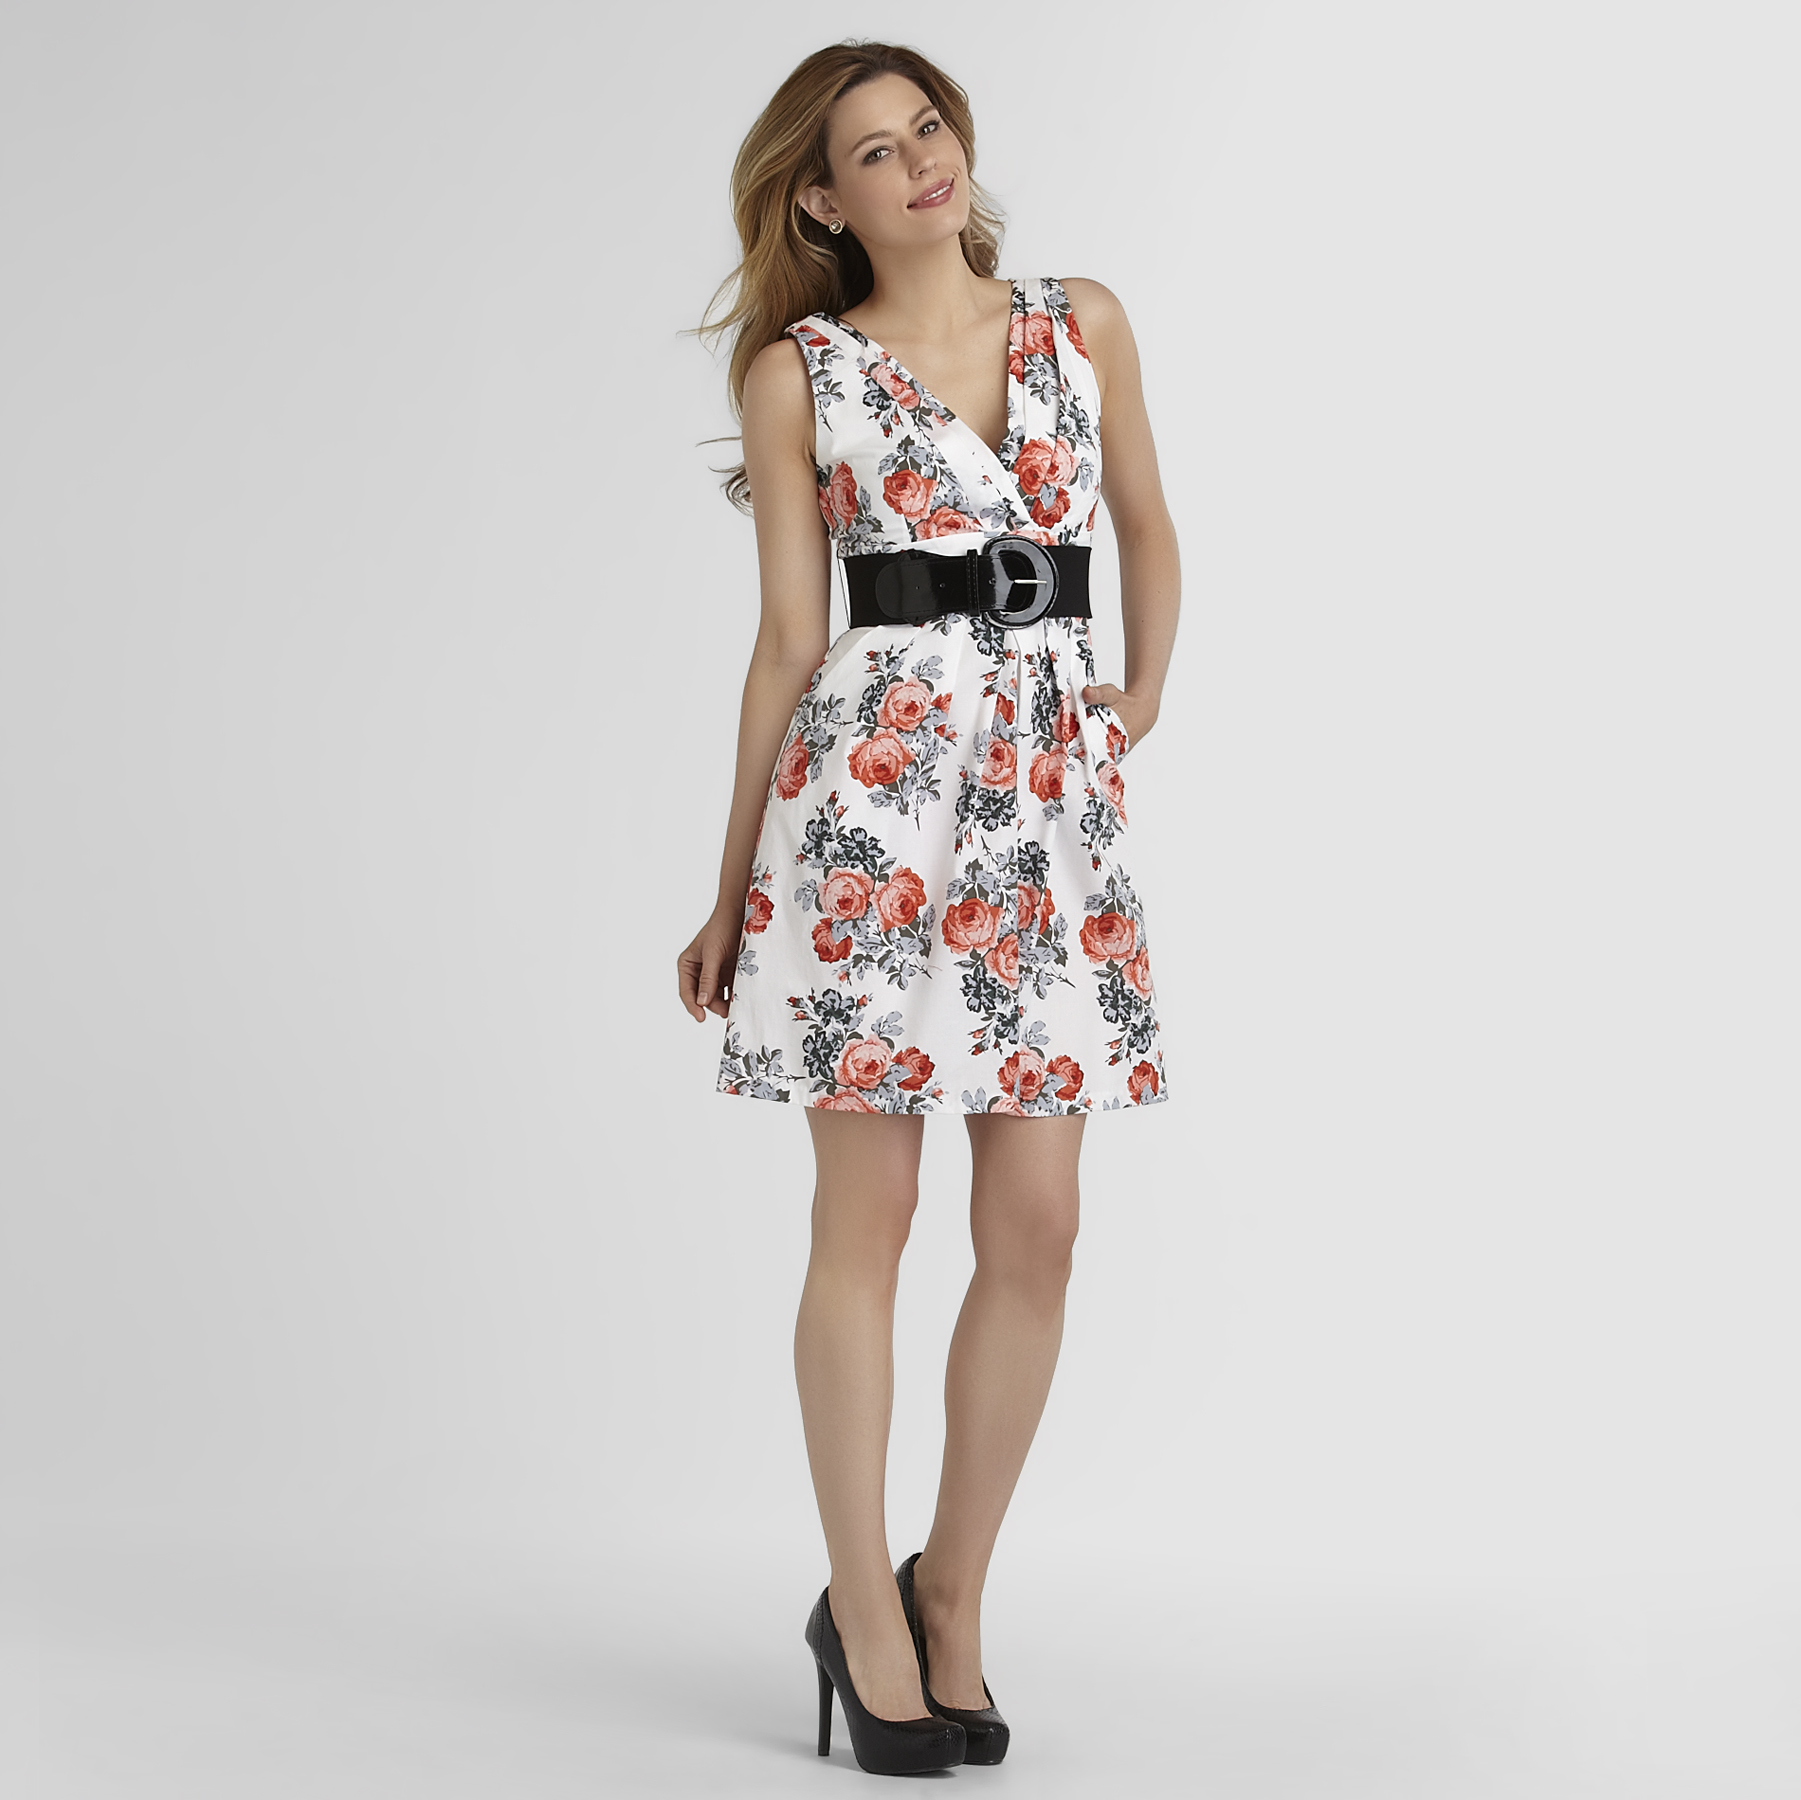 Women's Sleeveless Belted Dress - Floral at Sears.com